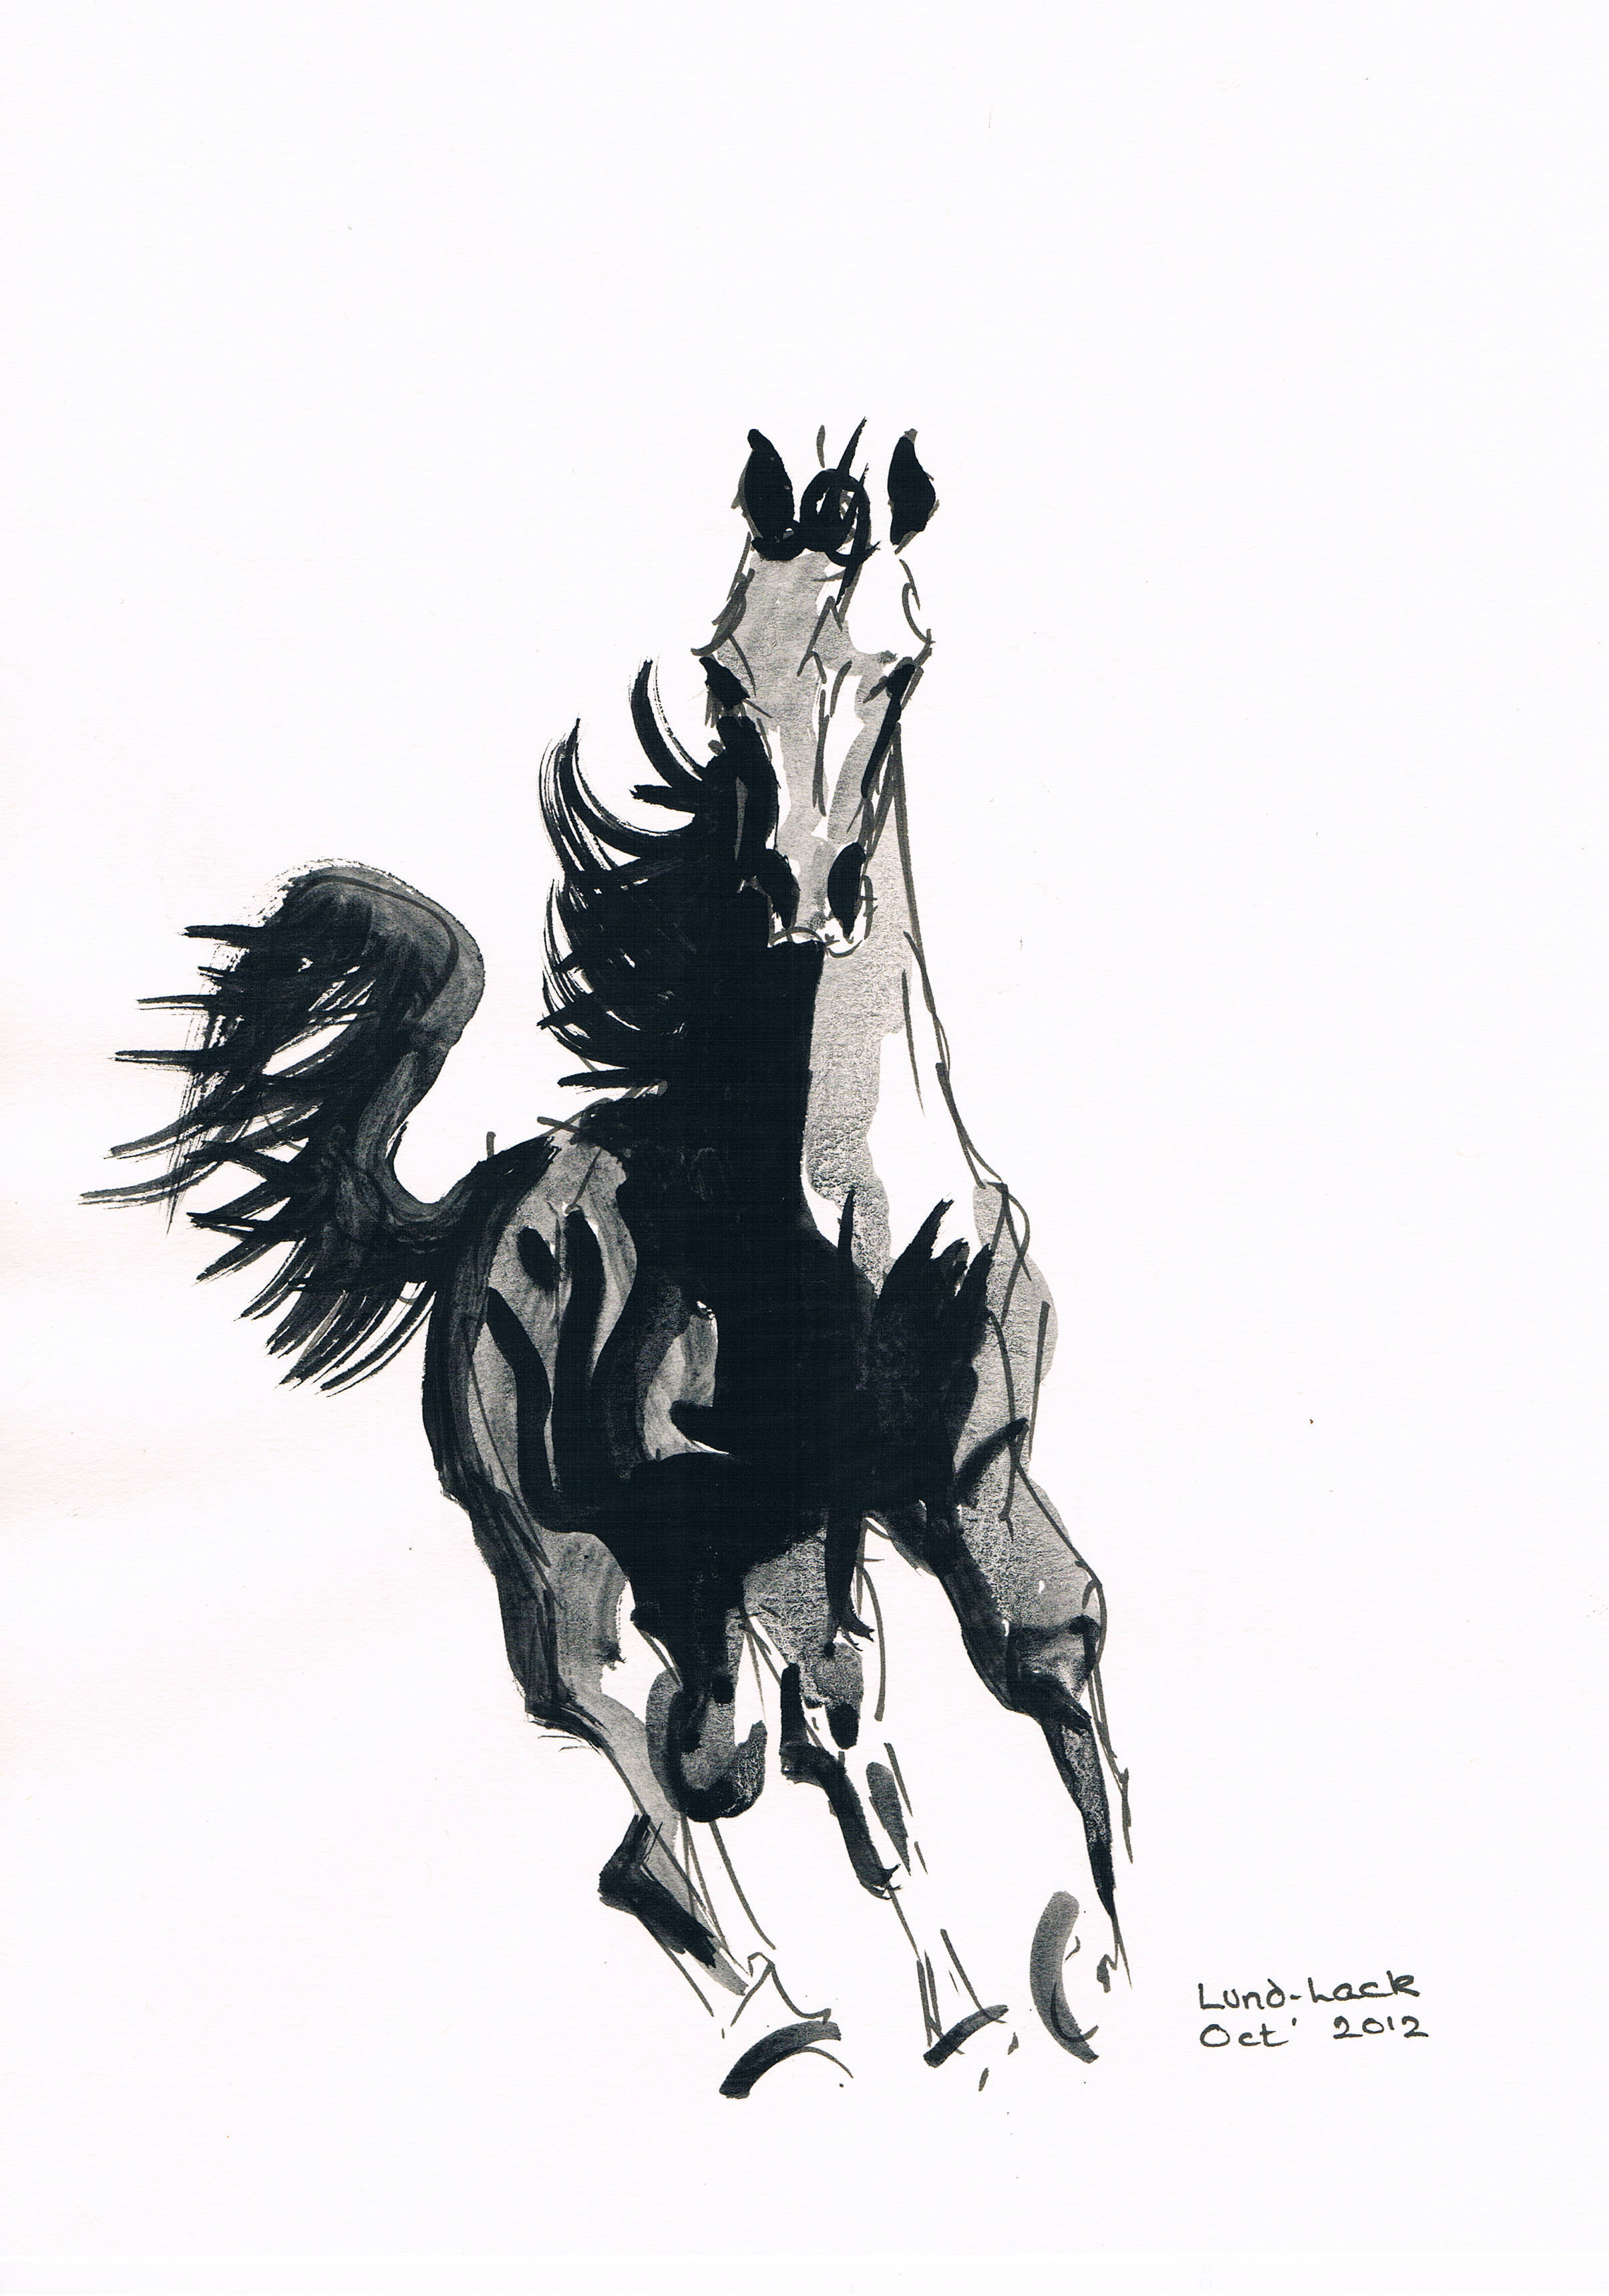 Running Horse No 2 Ink Painting By Tom Lund Lack Absolutearts Com